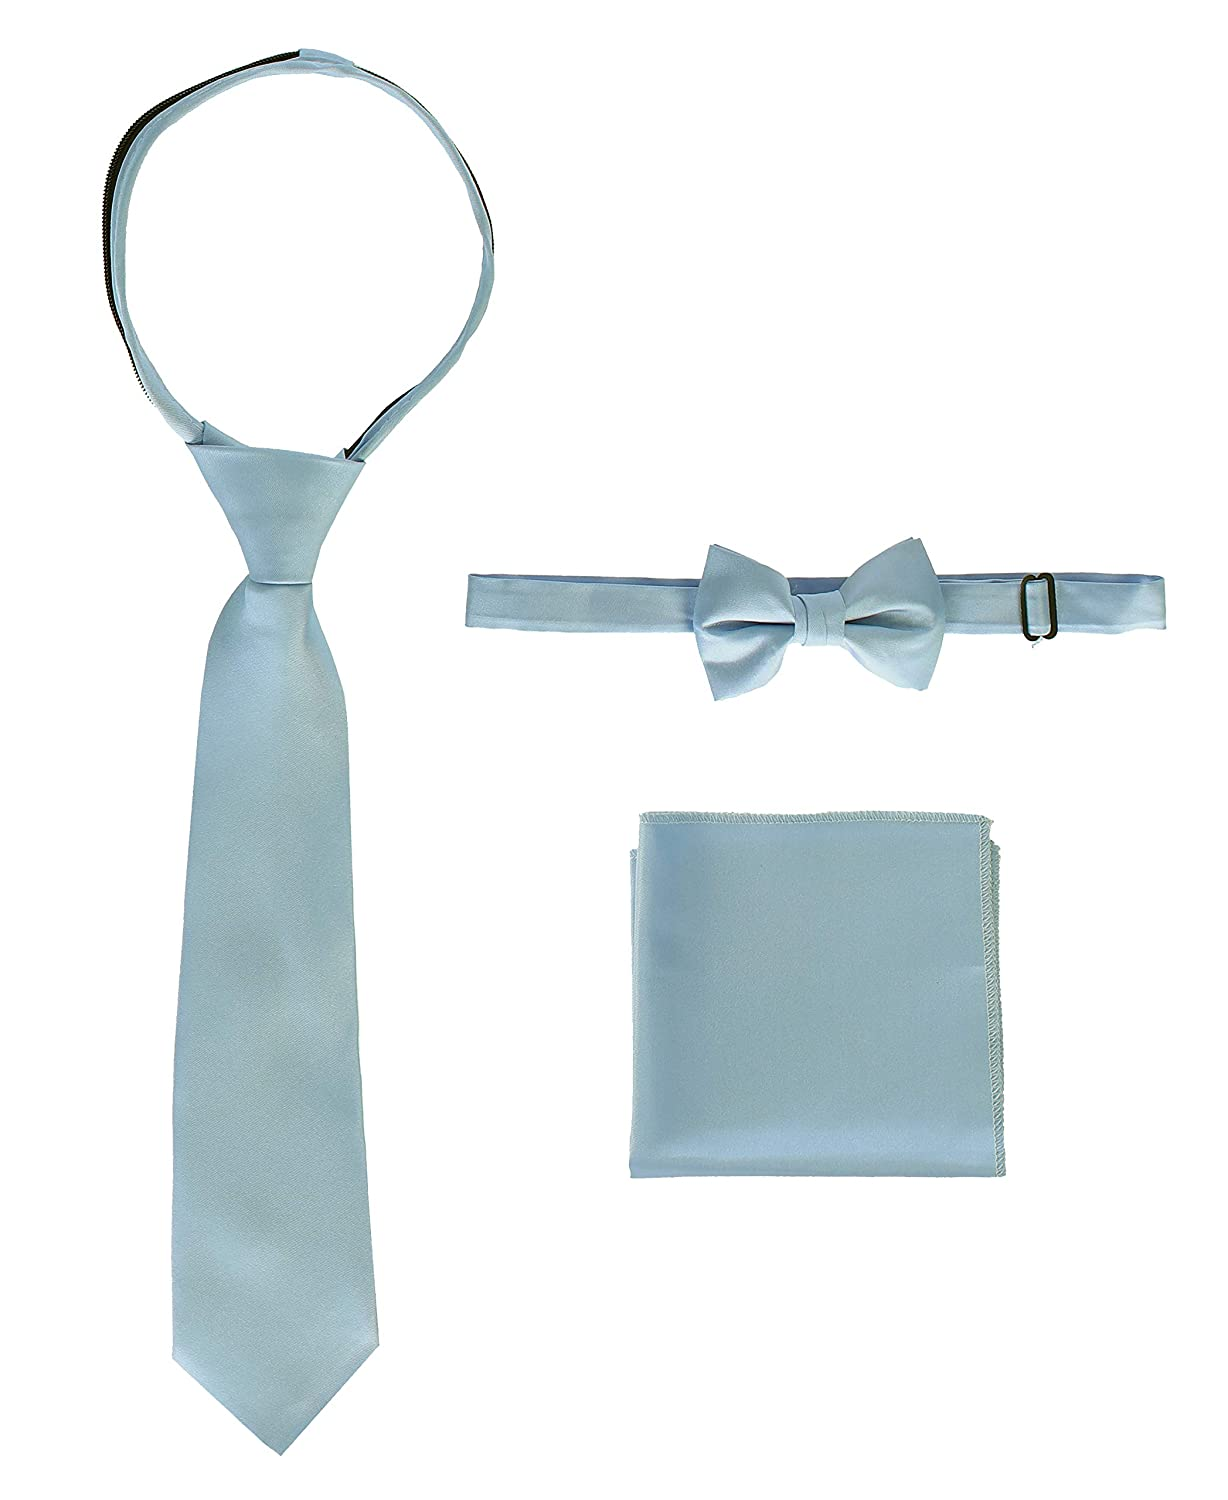 Gioberti Kid's and Boy's Solid Zipper Tie, Bow Tie and Handkerchief Set TS-8